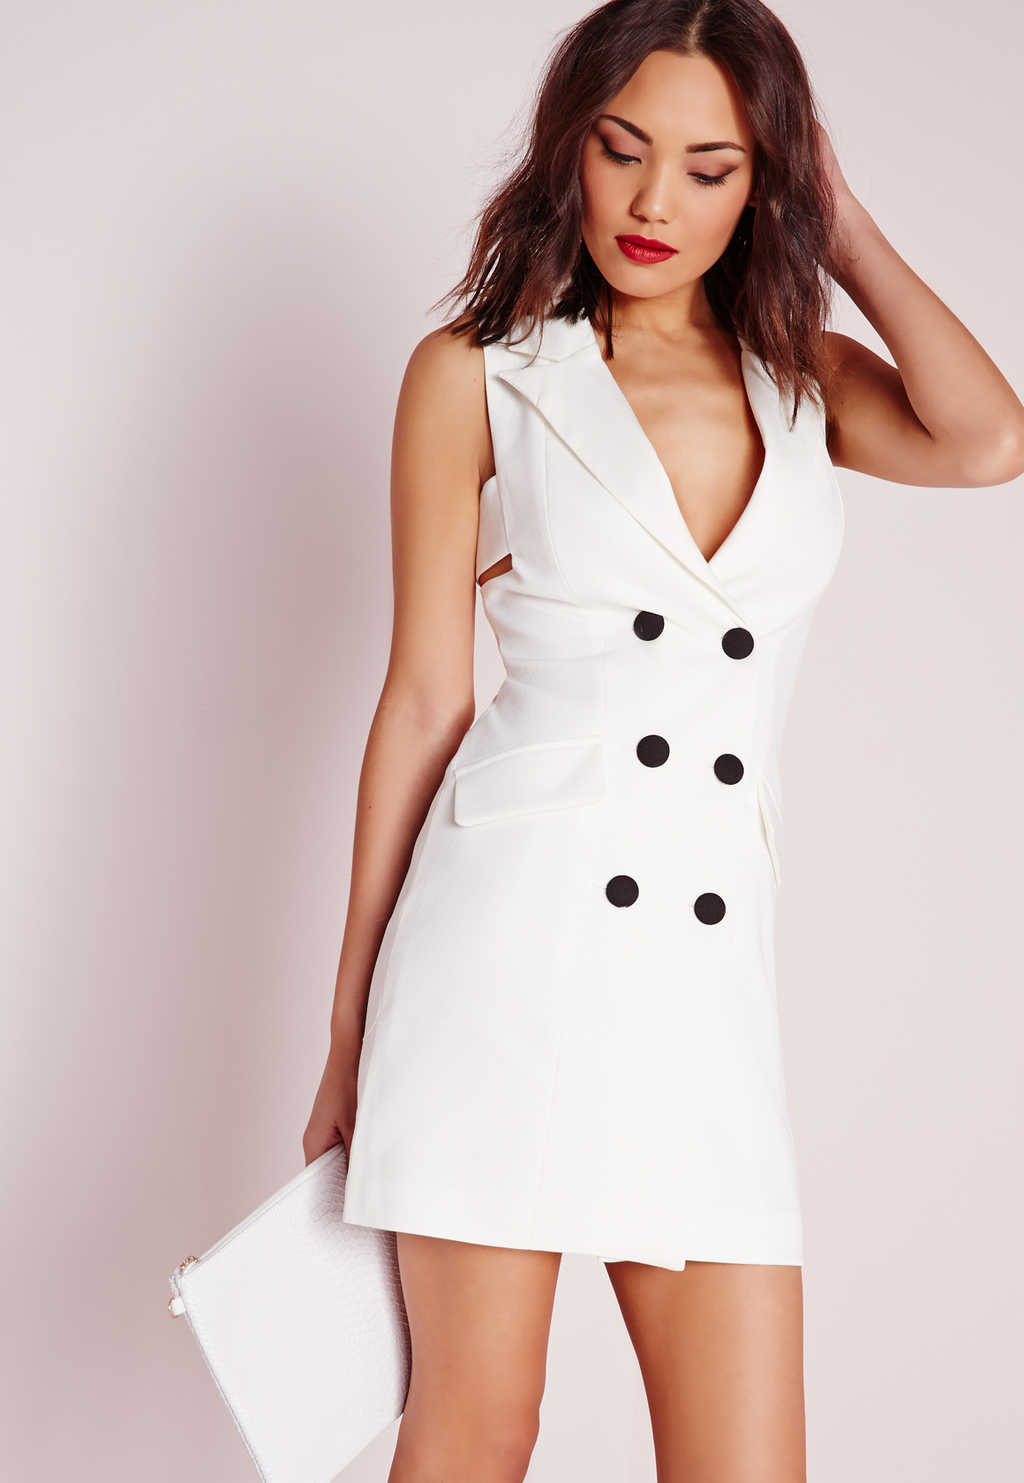 Crepe Sleeveless Blazer Dress White, White - style: shift; length: mini; neckline: low v-neck; fit: tailored/fitted; pattern: plain; sleeve style: sleeveless; predominant colour: white; occasions: evening; fibres: polyester/polyamide - 100%; hip detail: subtle/flattering hip detail; sleeve length: sleeveless; trends: monochrome; texture group: crepes; pattern type: fabric; season: s/s 2016; wardrobe: event